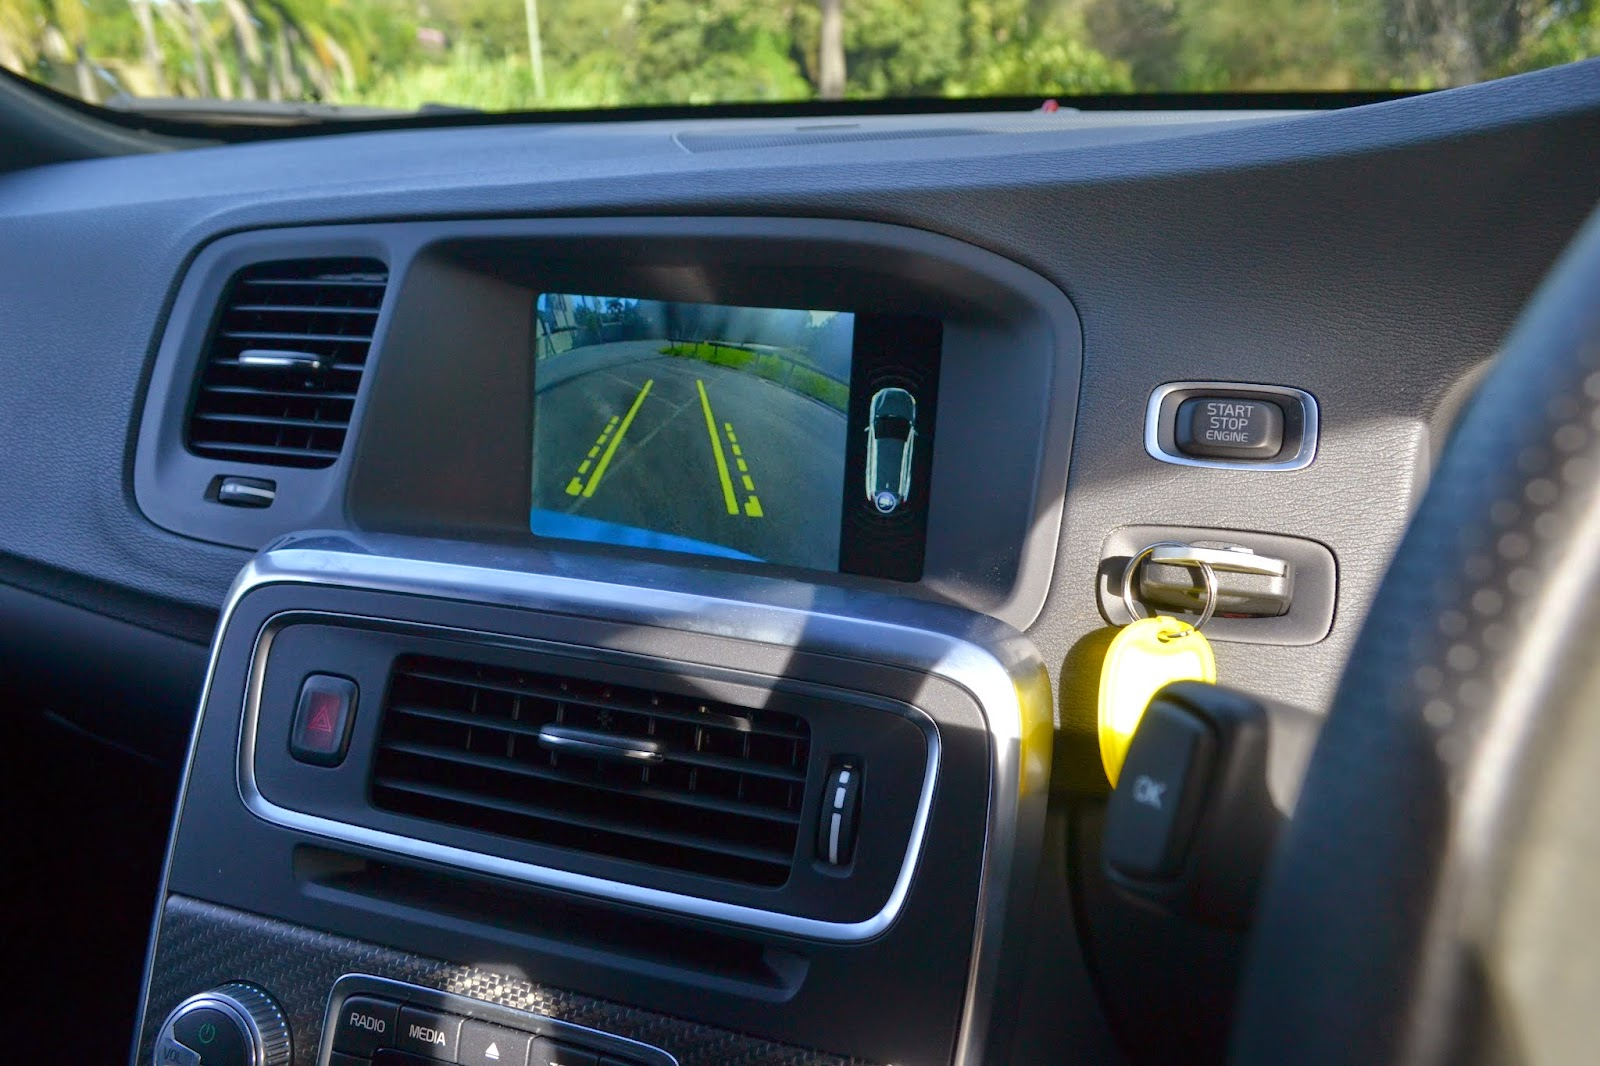 Select reverse and the V60's screen displays the rear camera image